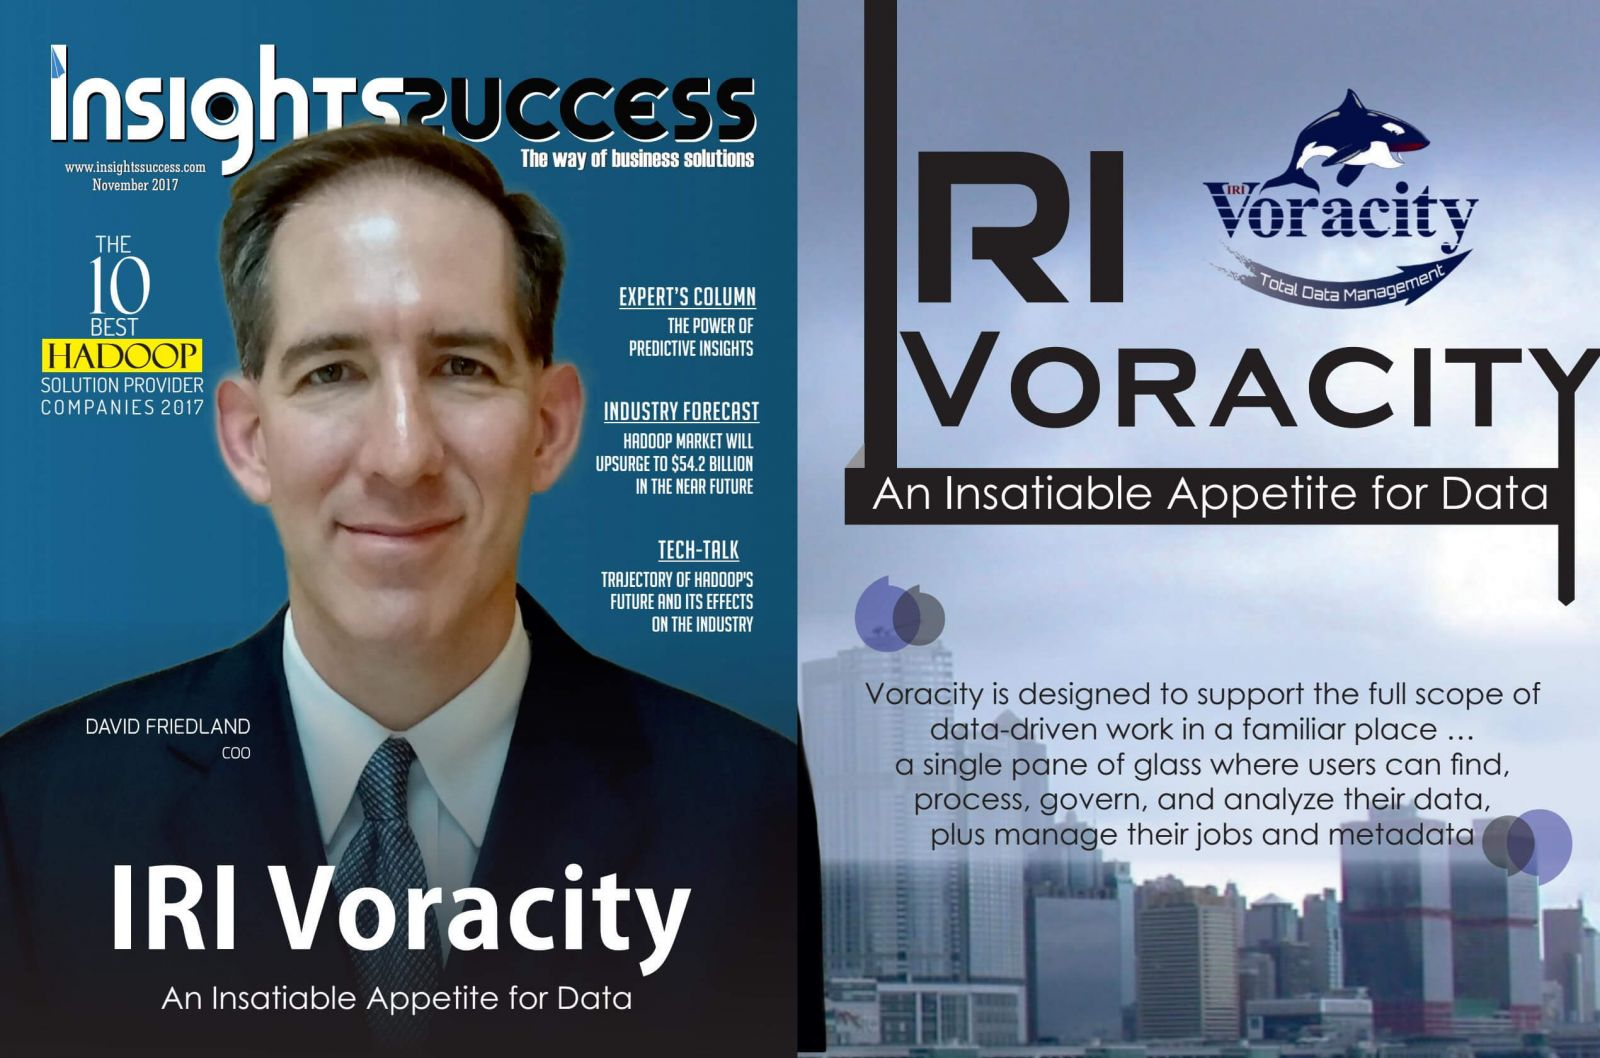 Voracity on the cover of Insights Success